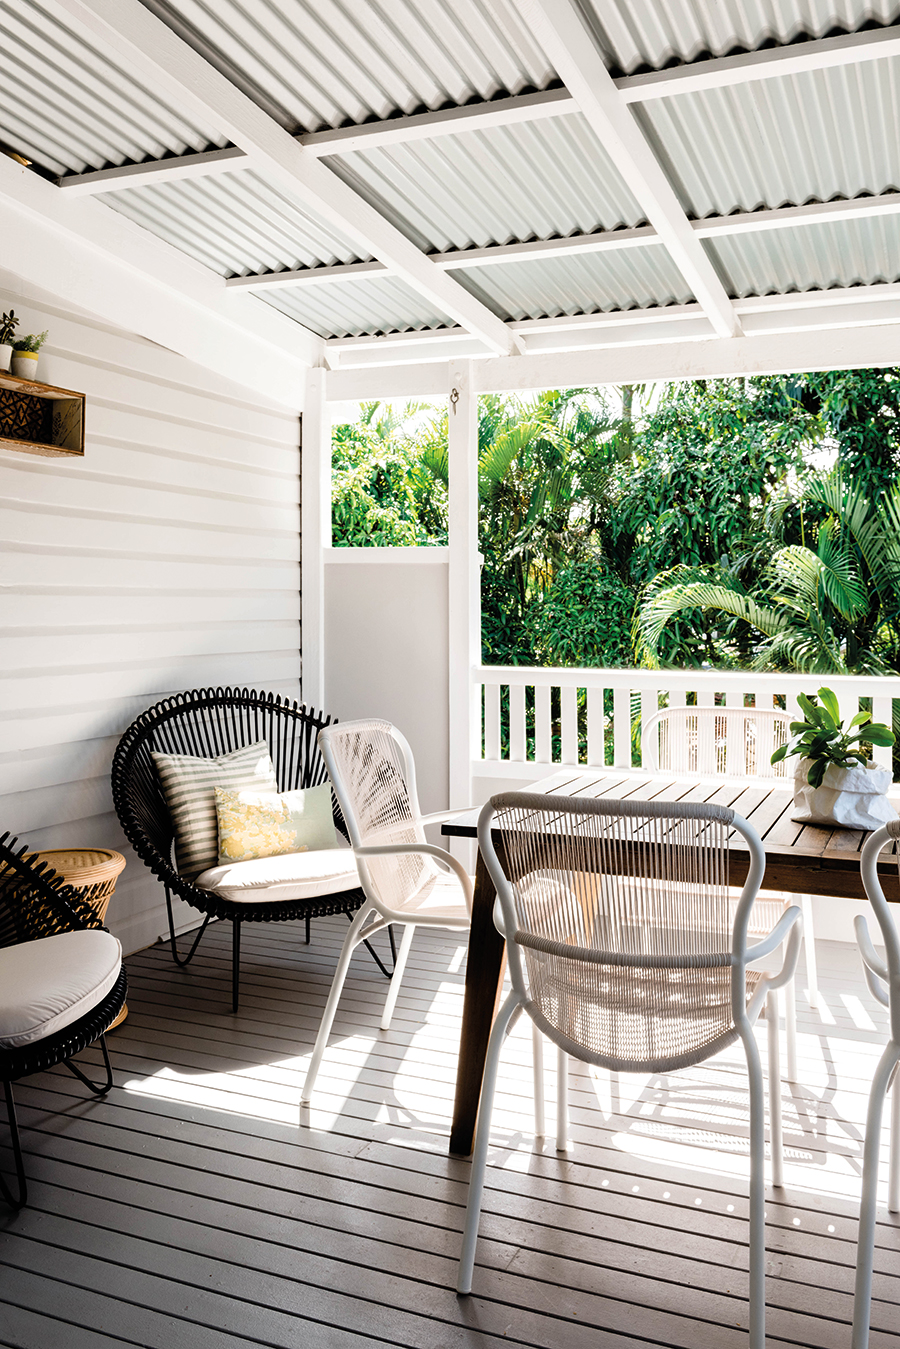 Connors and Co Queenslander home verandah styling